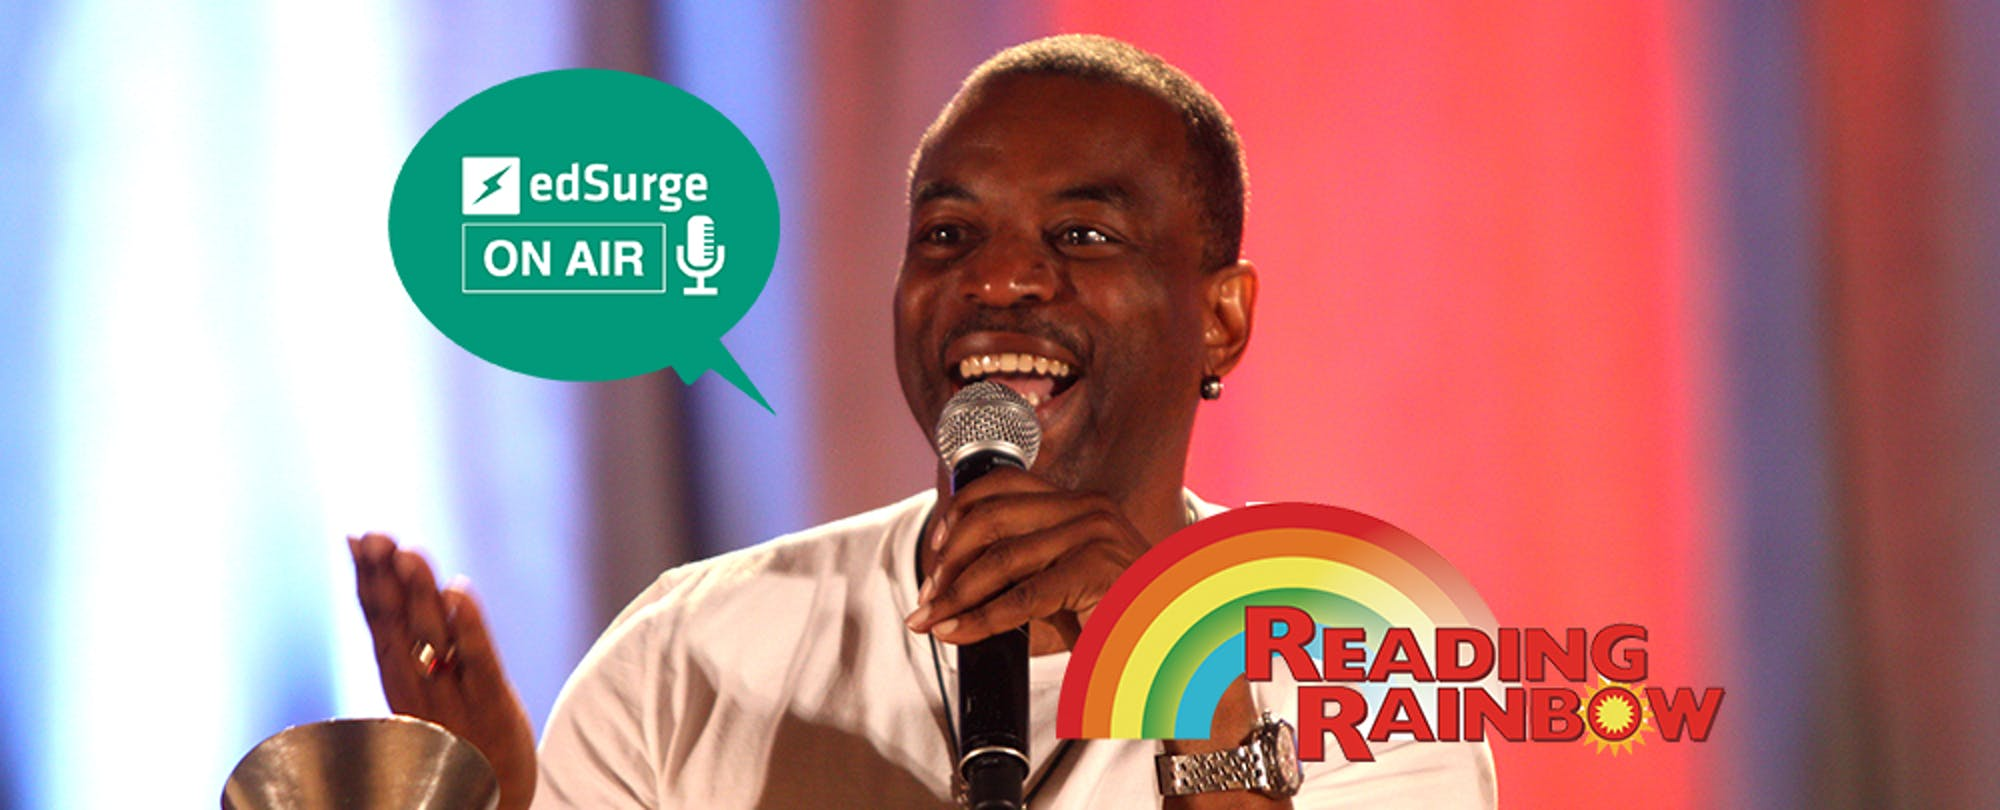 Reading Rainbow's LeVar Burton: Will Digital Books Replace Print?